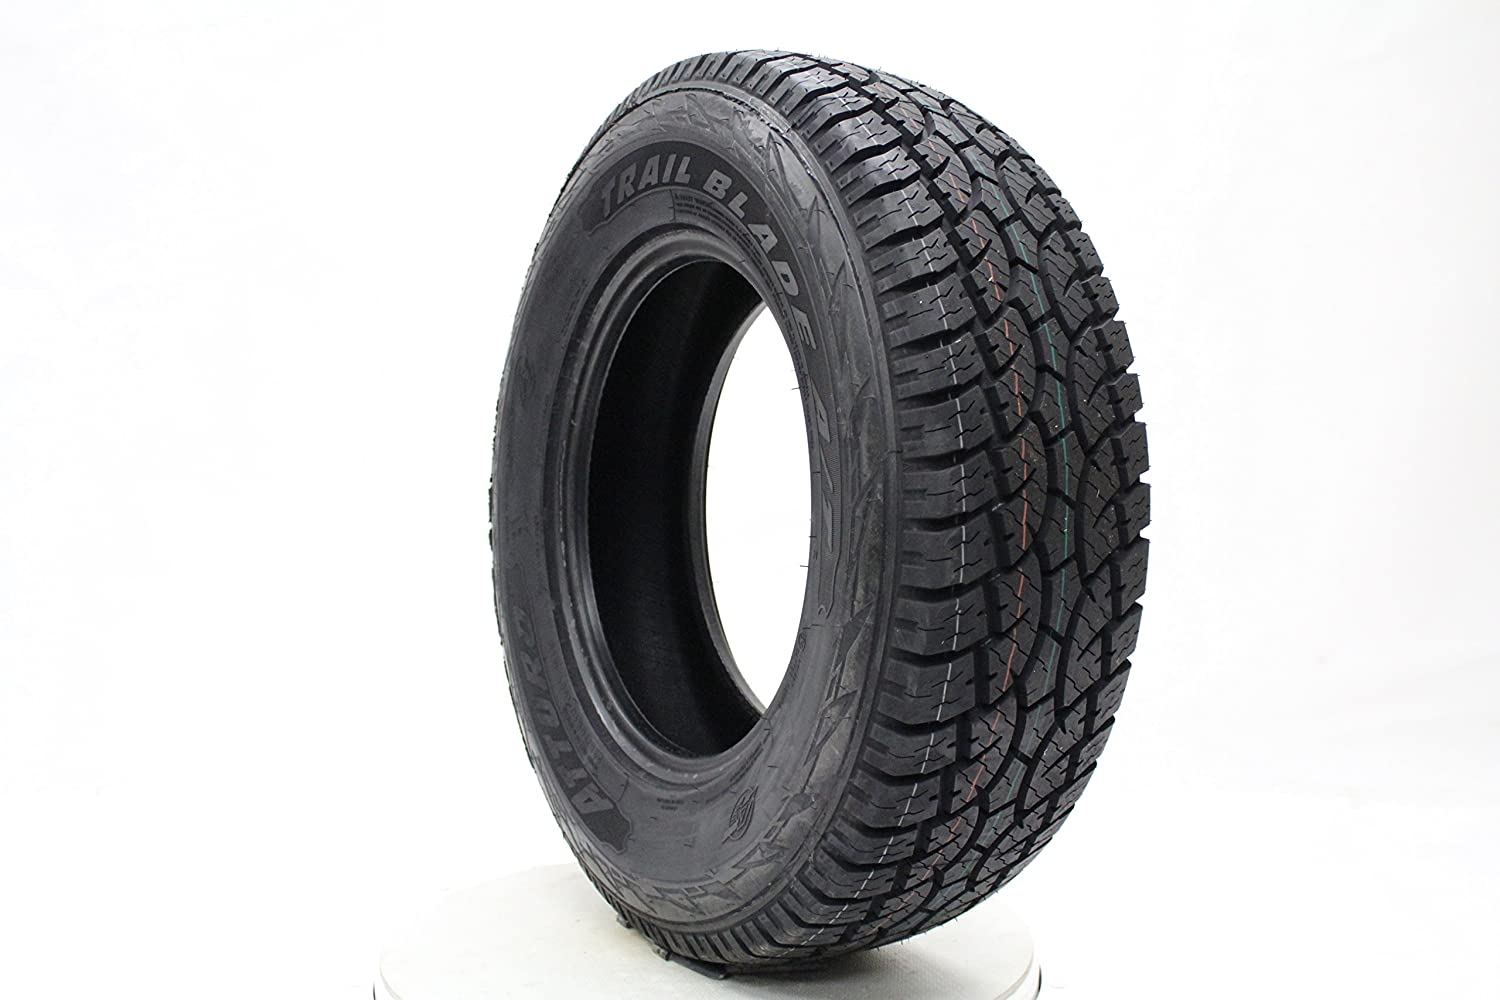 Atturo Trail Blade A/T All-Season Radial Tire - 275/60R20 115T I0048338